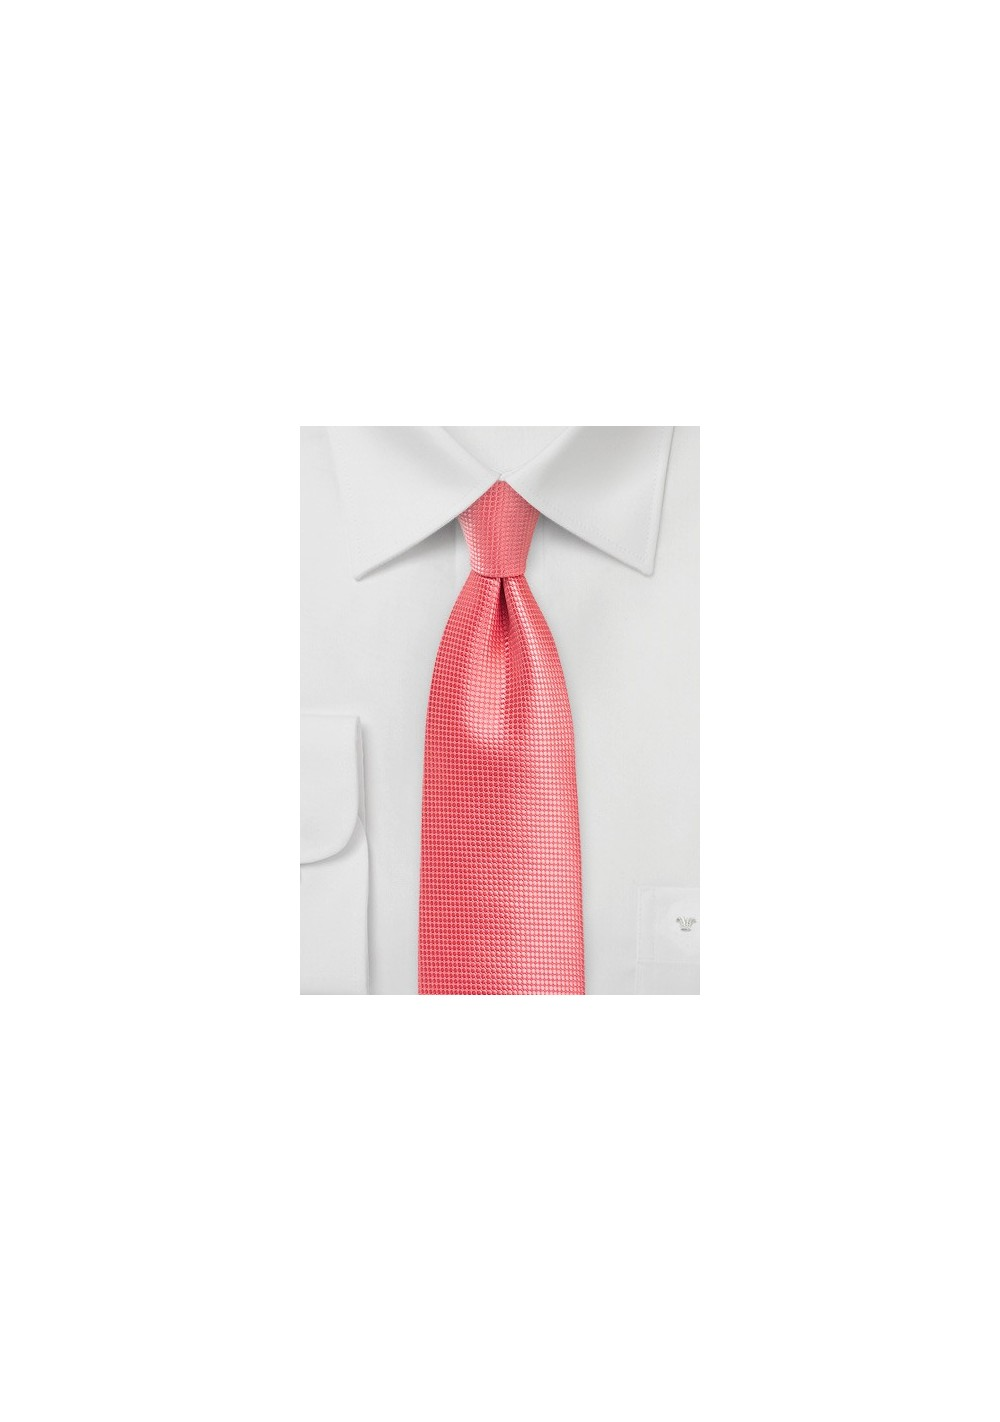 Textured Tie in Georgia Peach